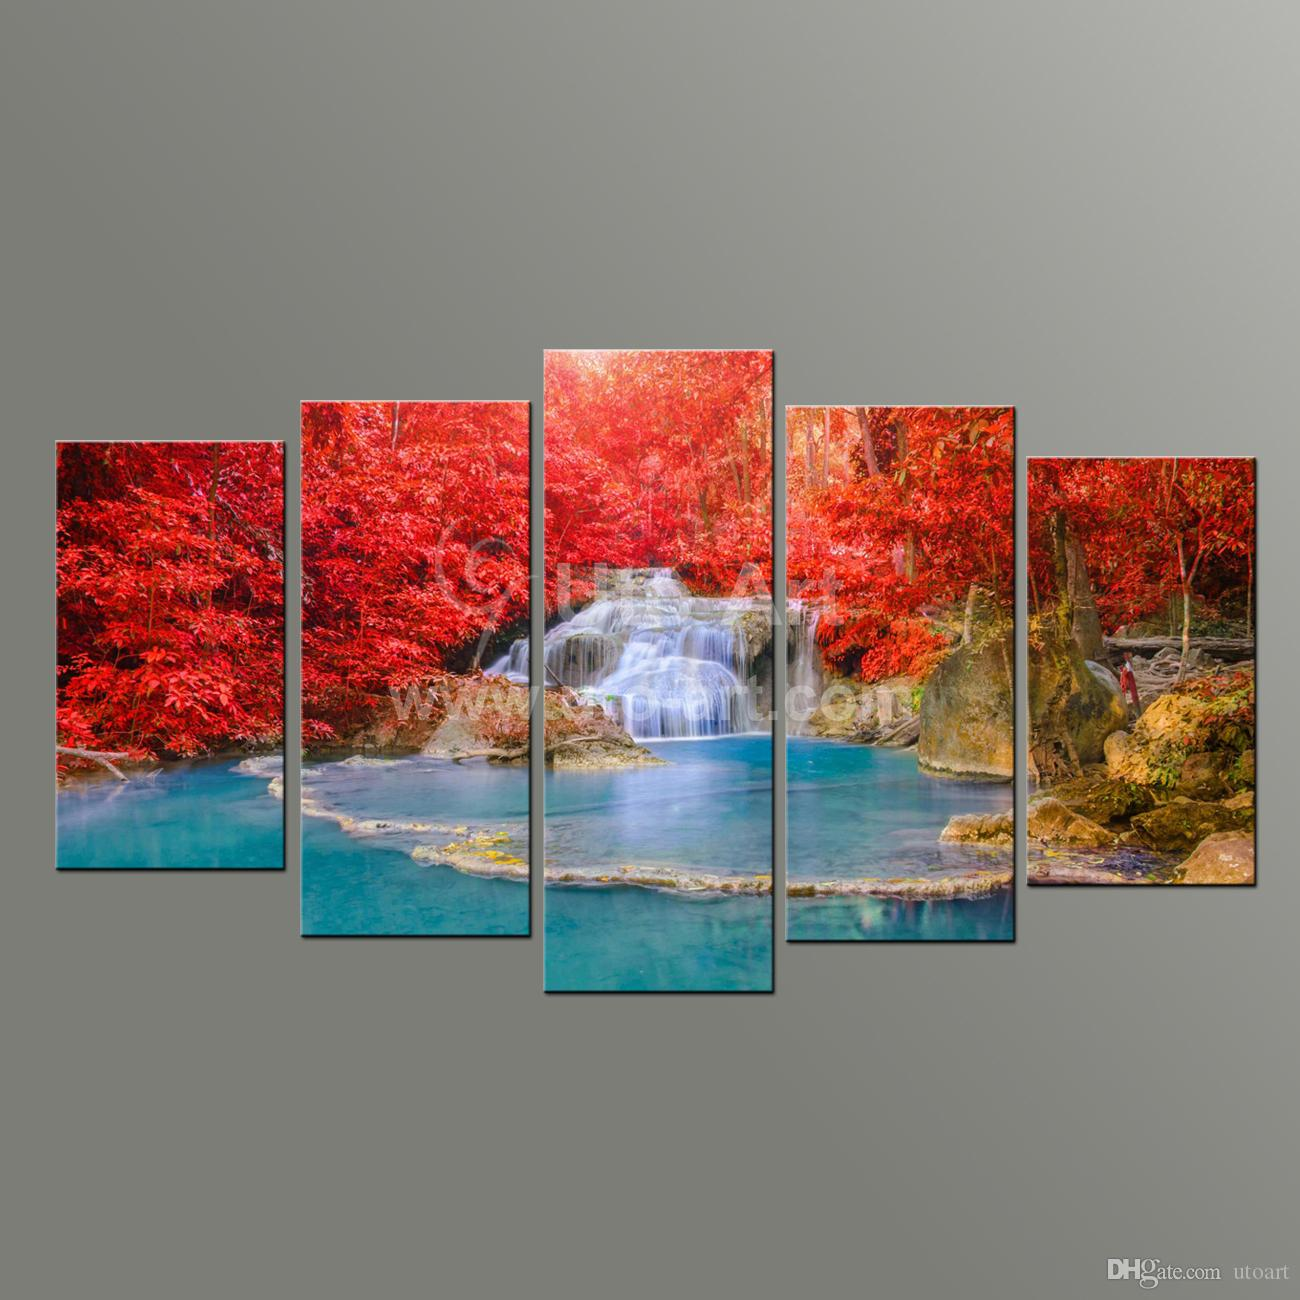 5 Panel Wall Art 2017 5 panel wall art paintings landscaping waterfall picture and